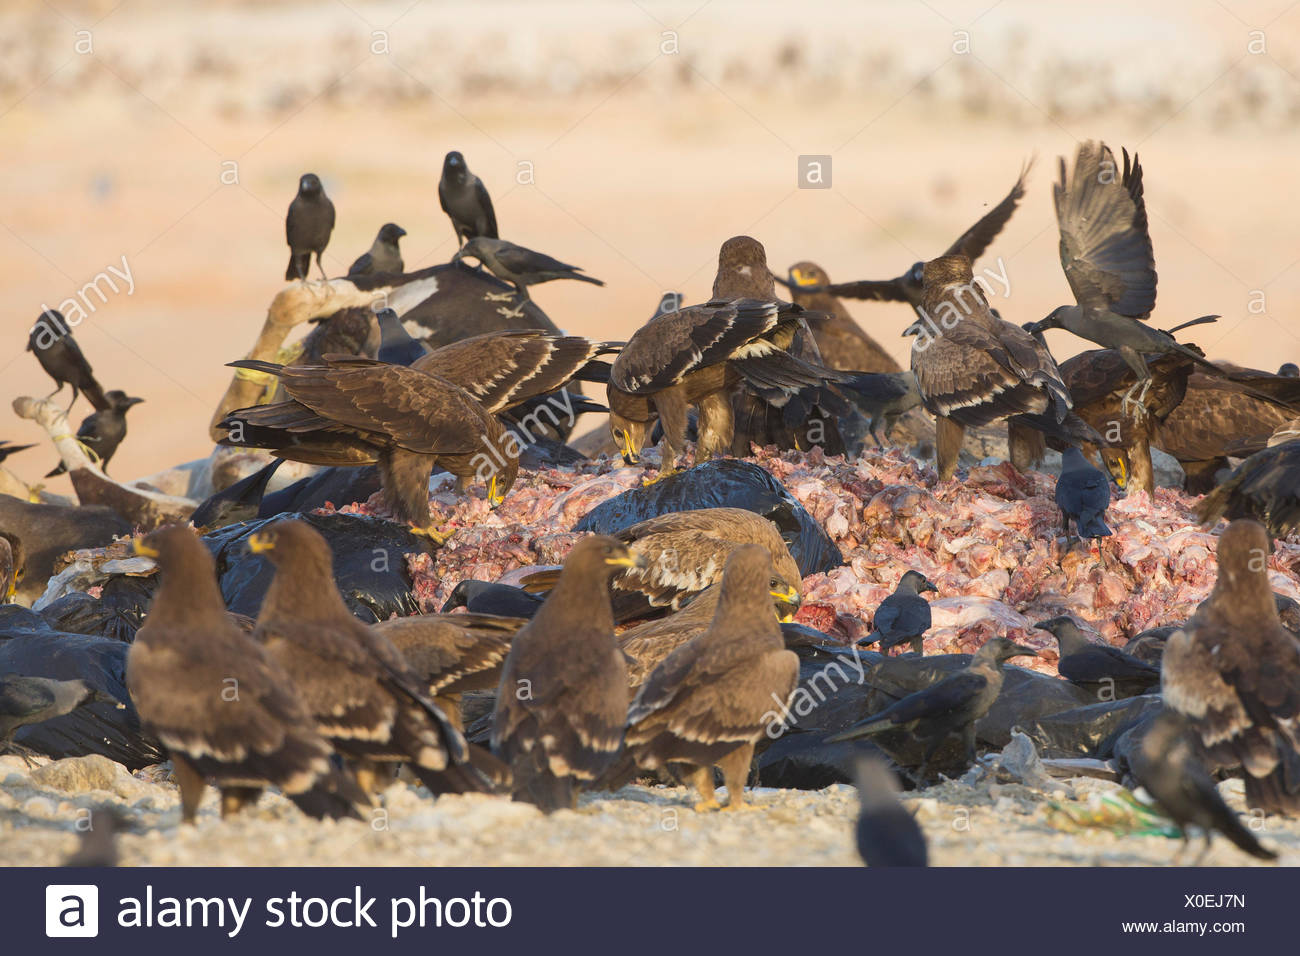 Steppe Eagle ( Aquila nipalensis) foraging at a landfill site - Stock Image